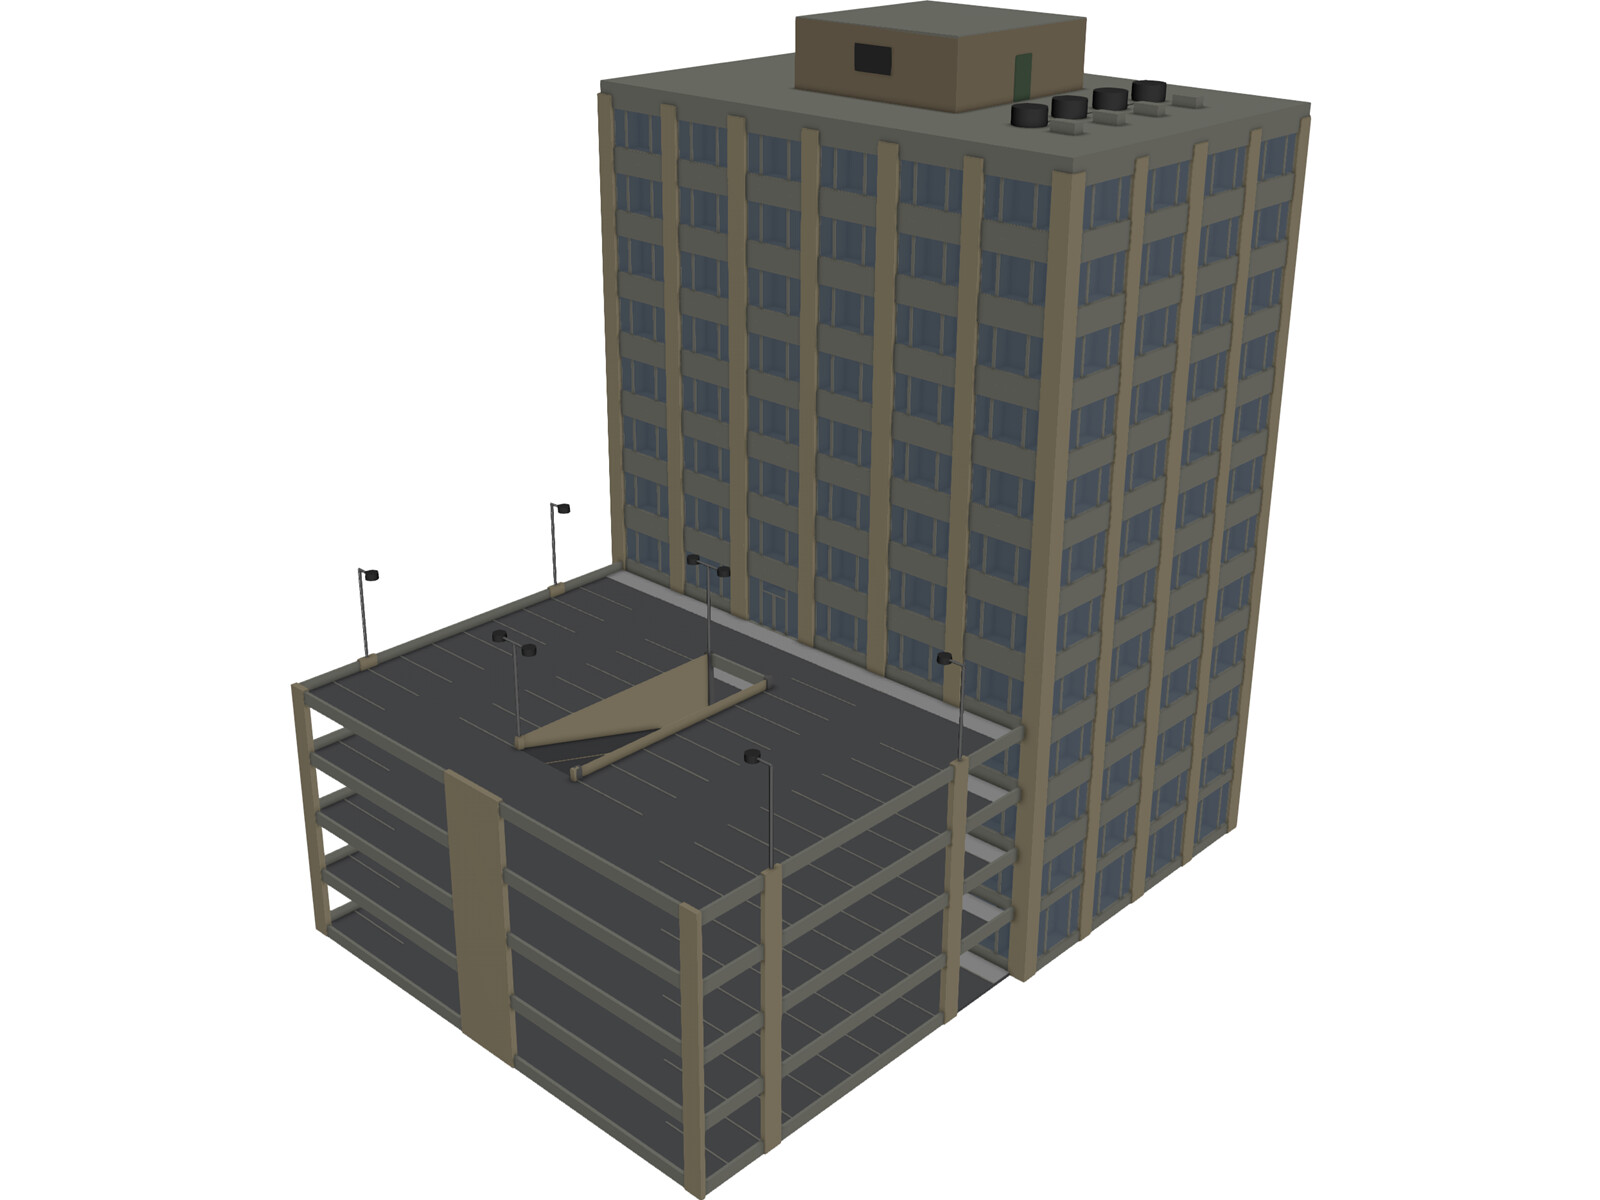 Building Mid-Rise and Parking 3D Model - 3D CAD Browser